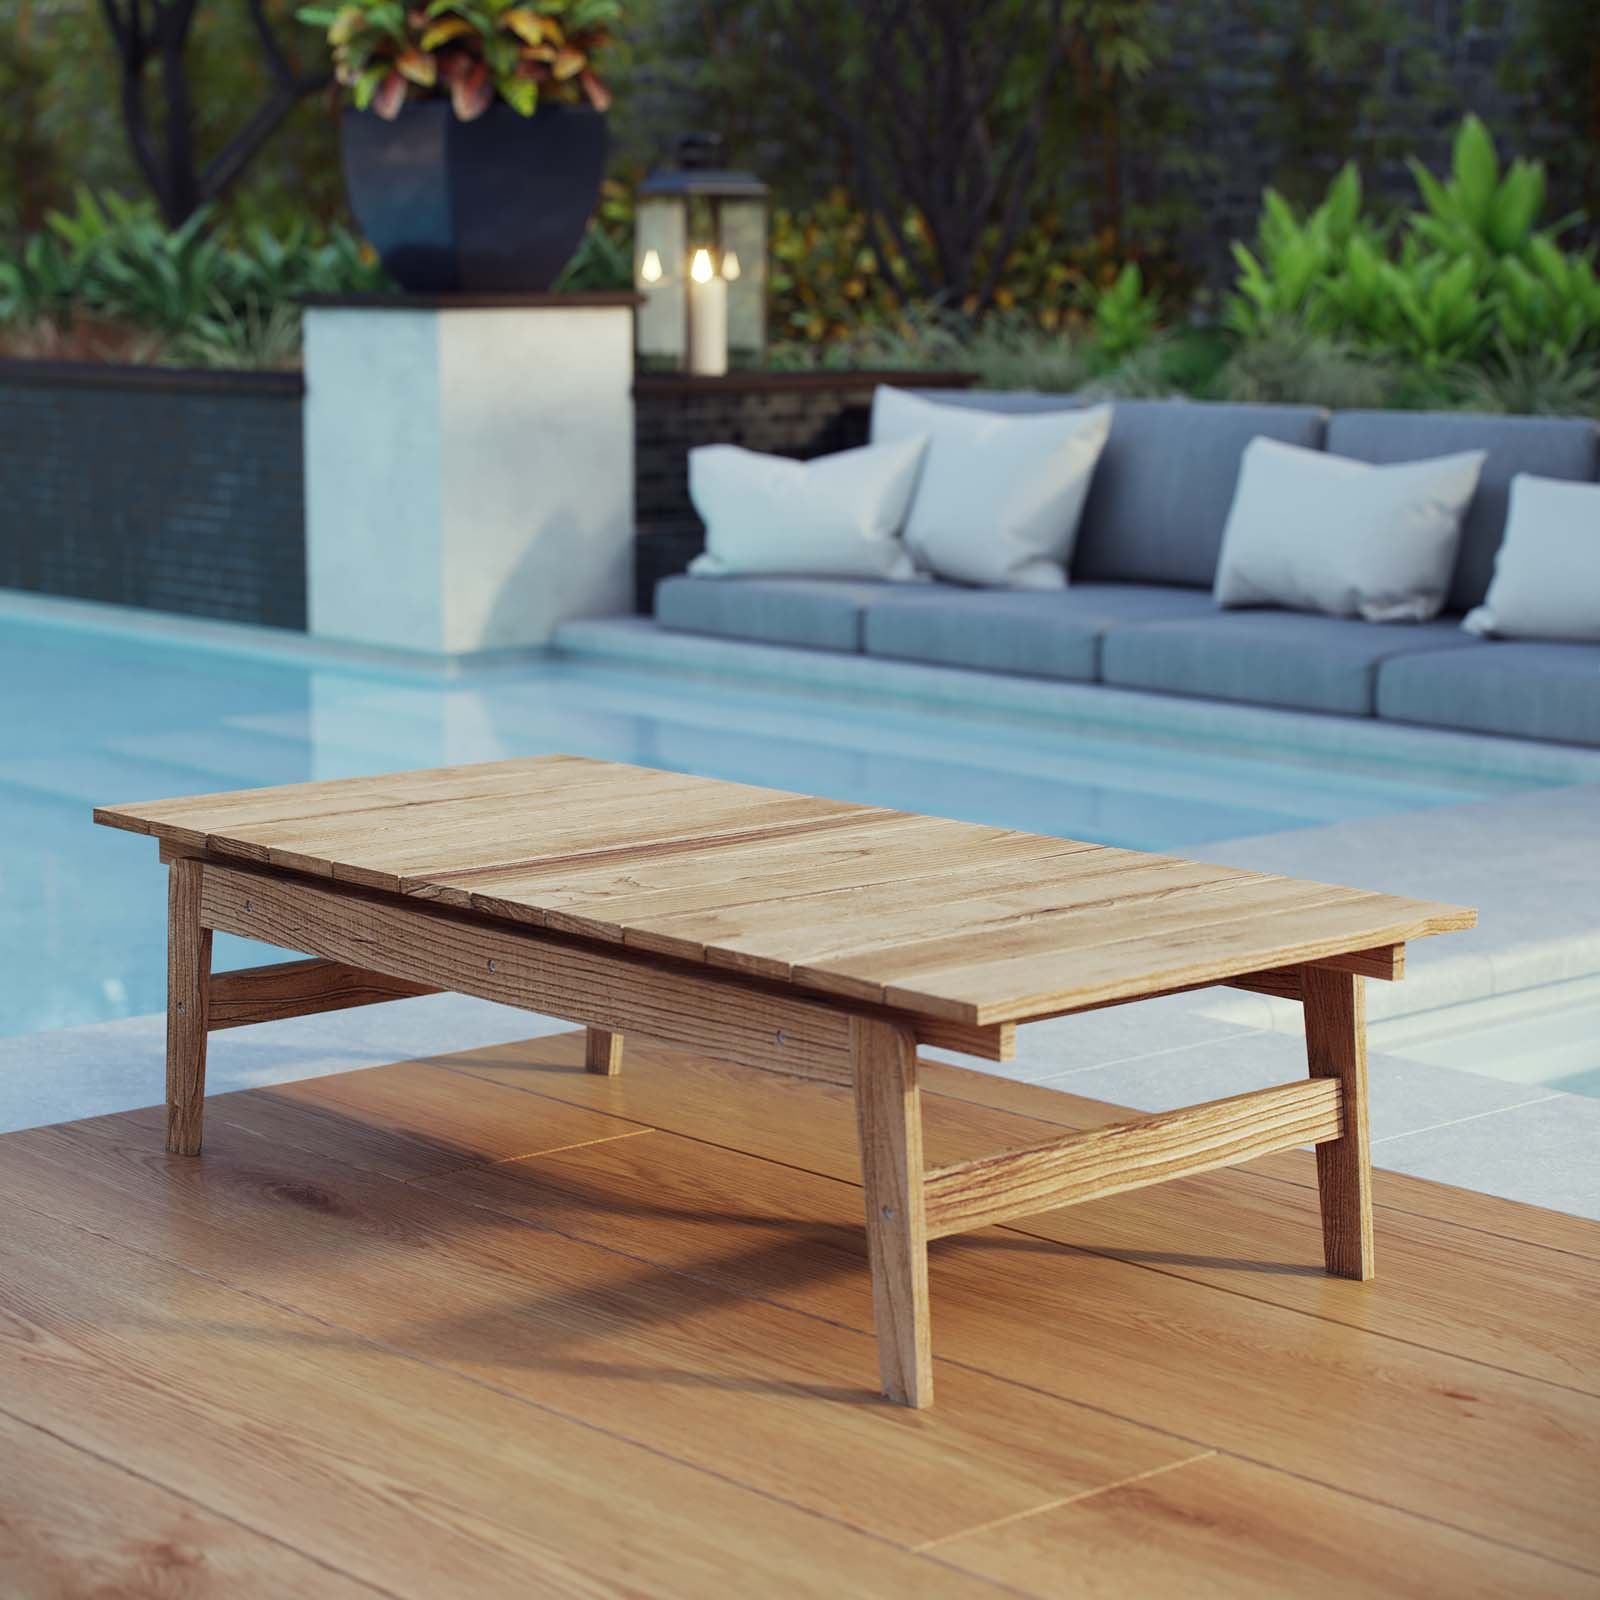 Bayport Outdoor Patio Teak Coffee Table Natural